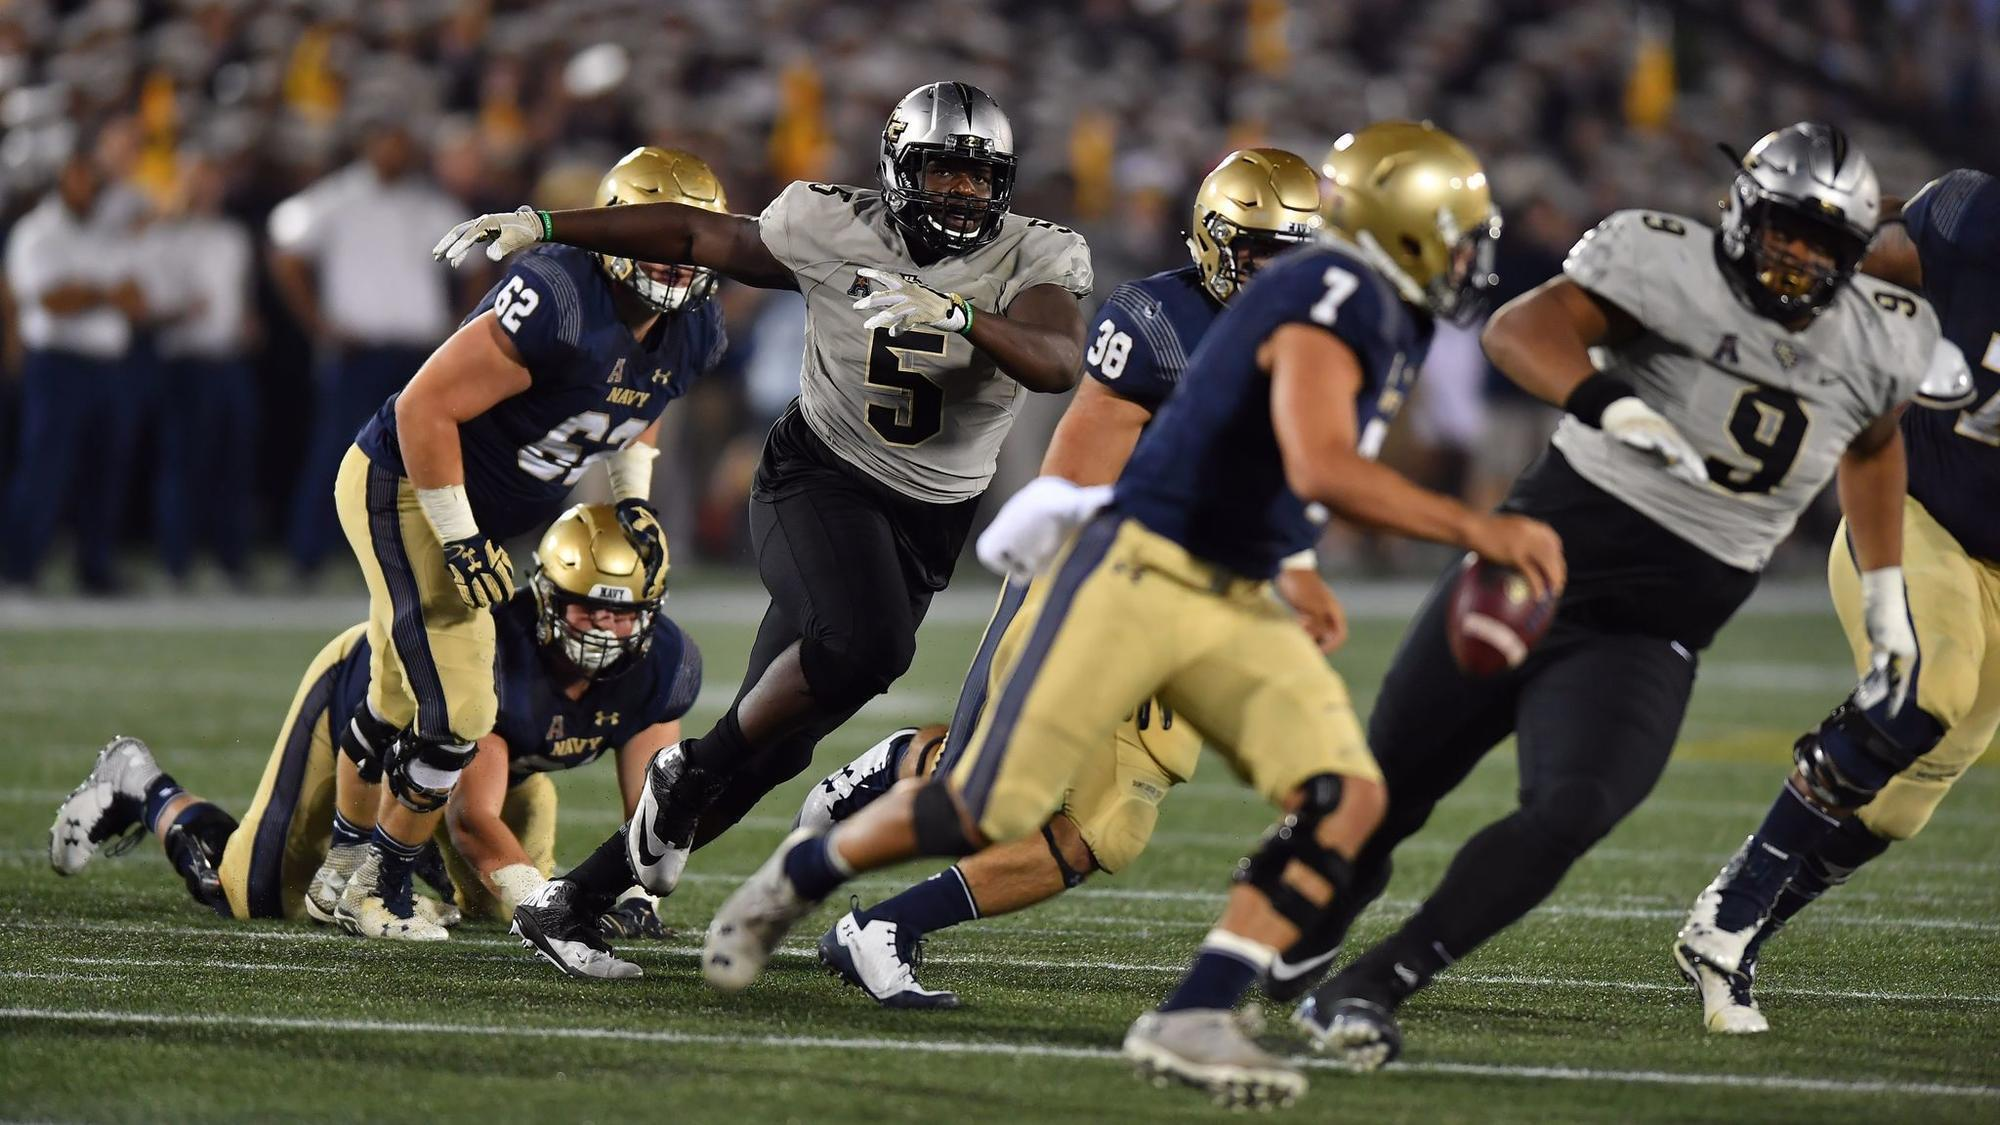 ucf football knights sports defensive line